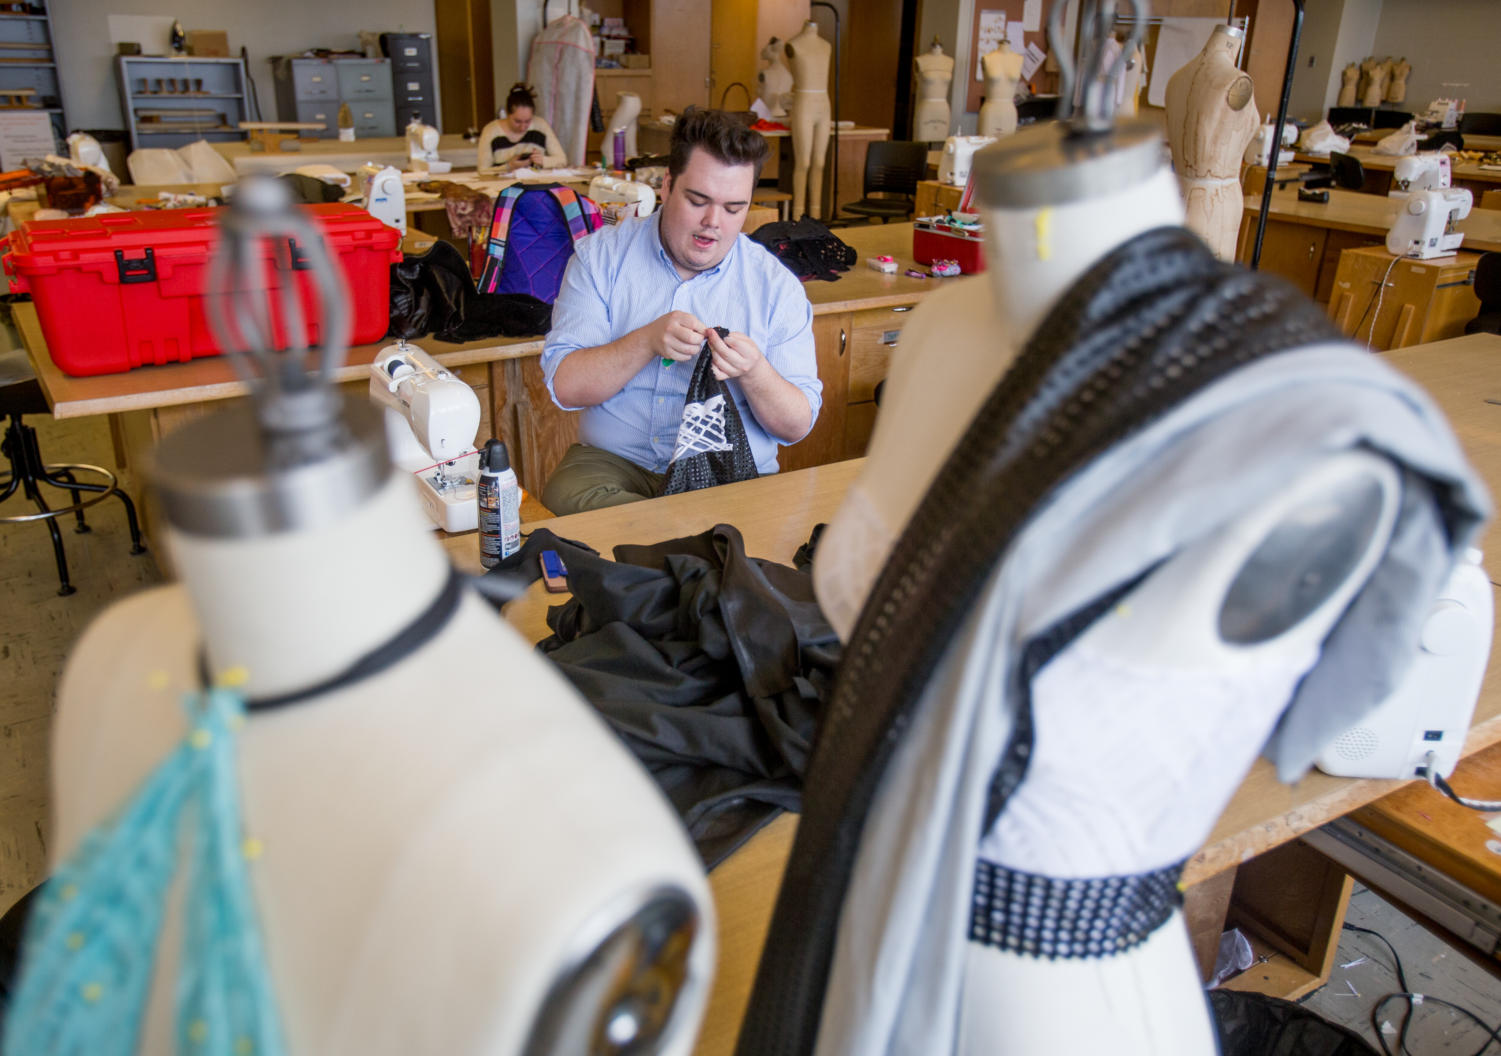 Joshua Gavel, a senior studying fashion design and merchandising from Champaign, puts together clothing for the senior design runway show Monday, April 2, 2018, in the fashion merchandising studio in Quigley Hall.